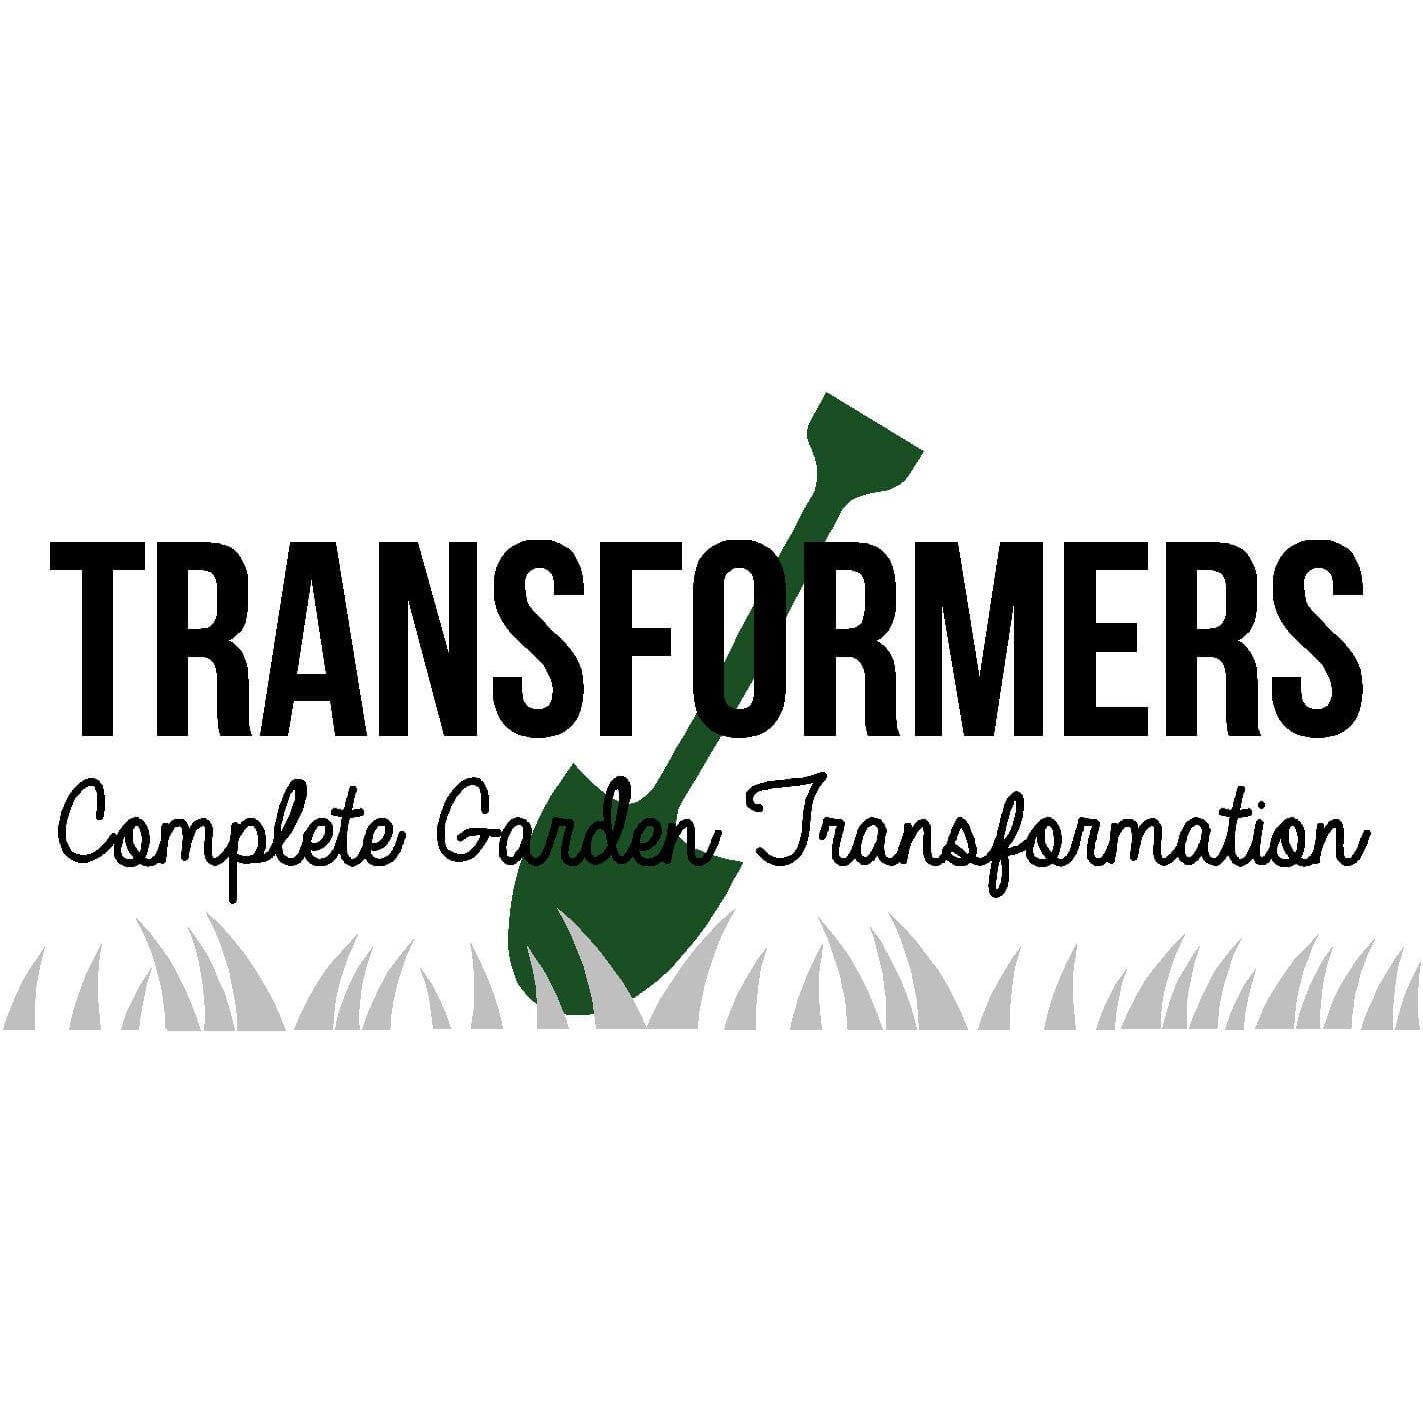 Transformers Complete Building & Garden Transformations Logo